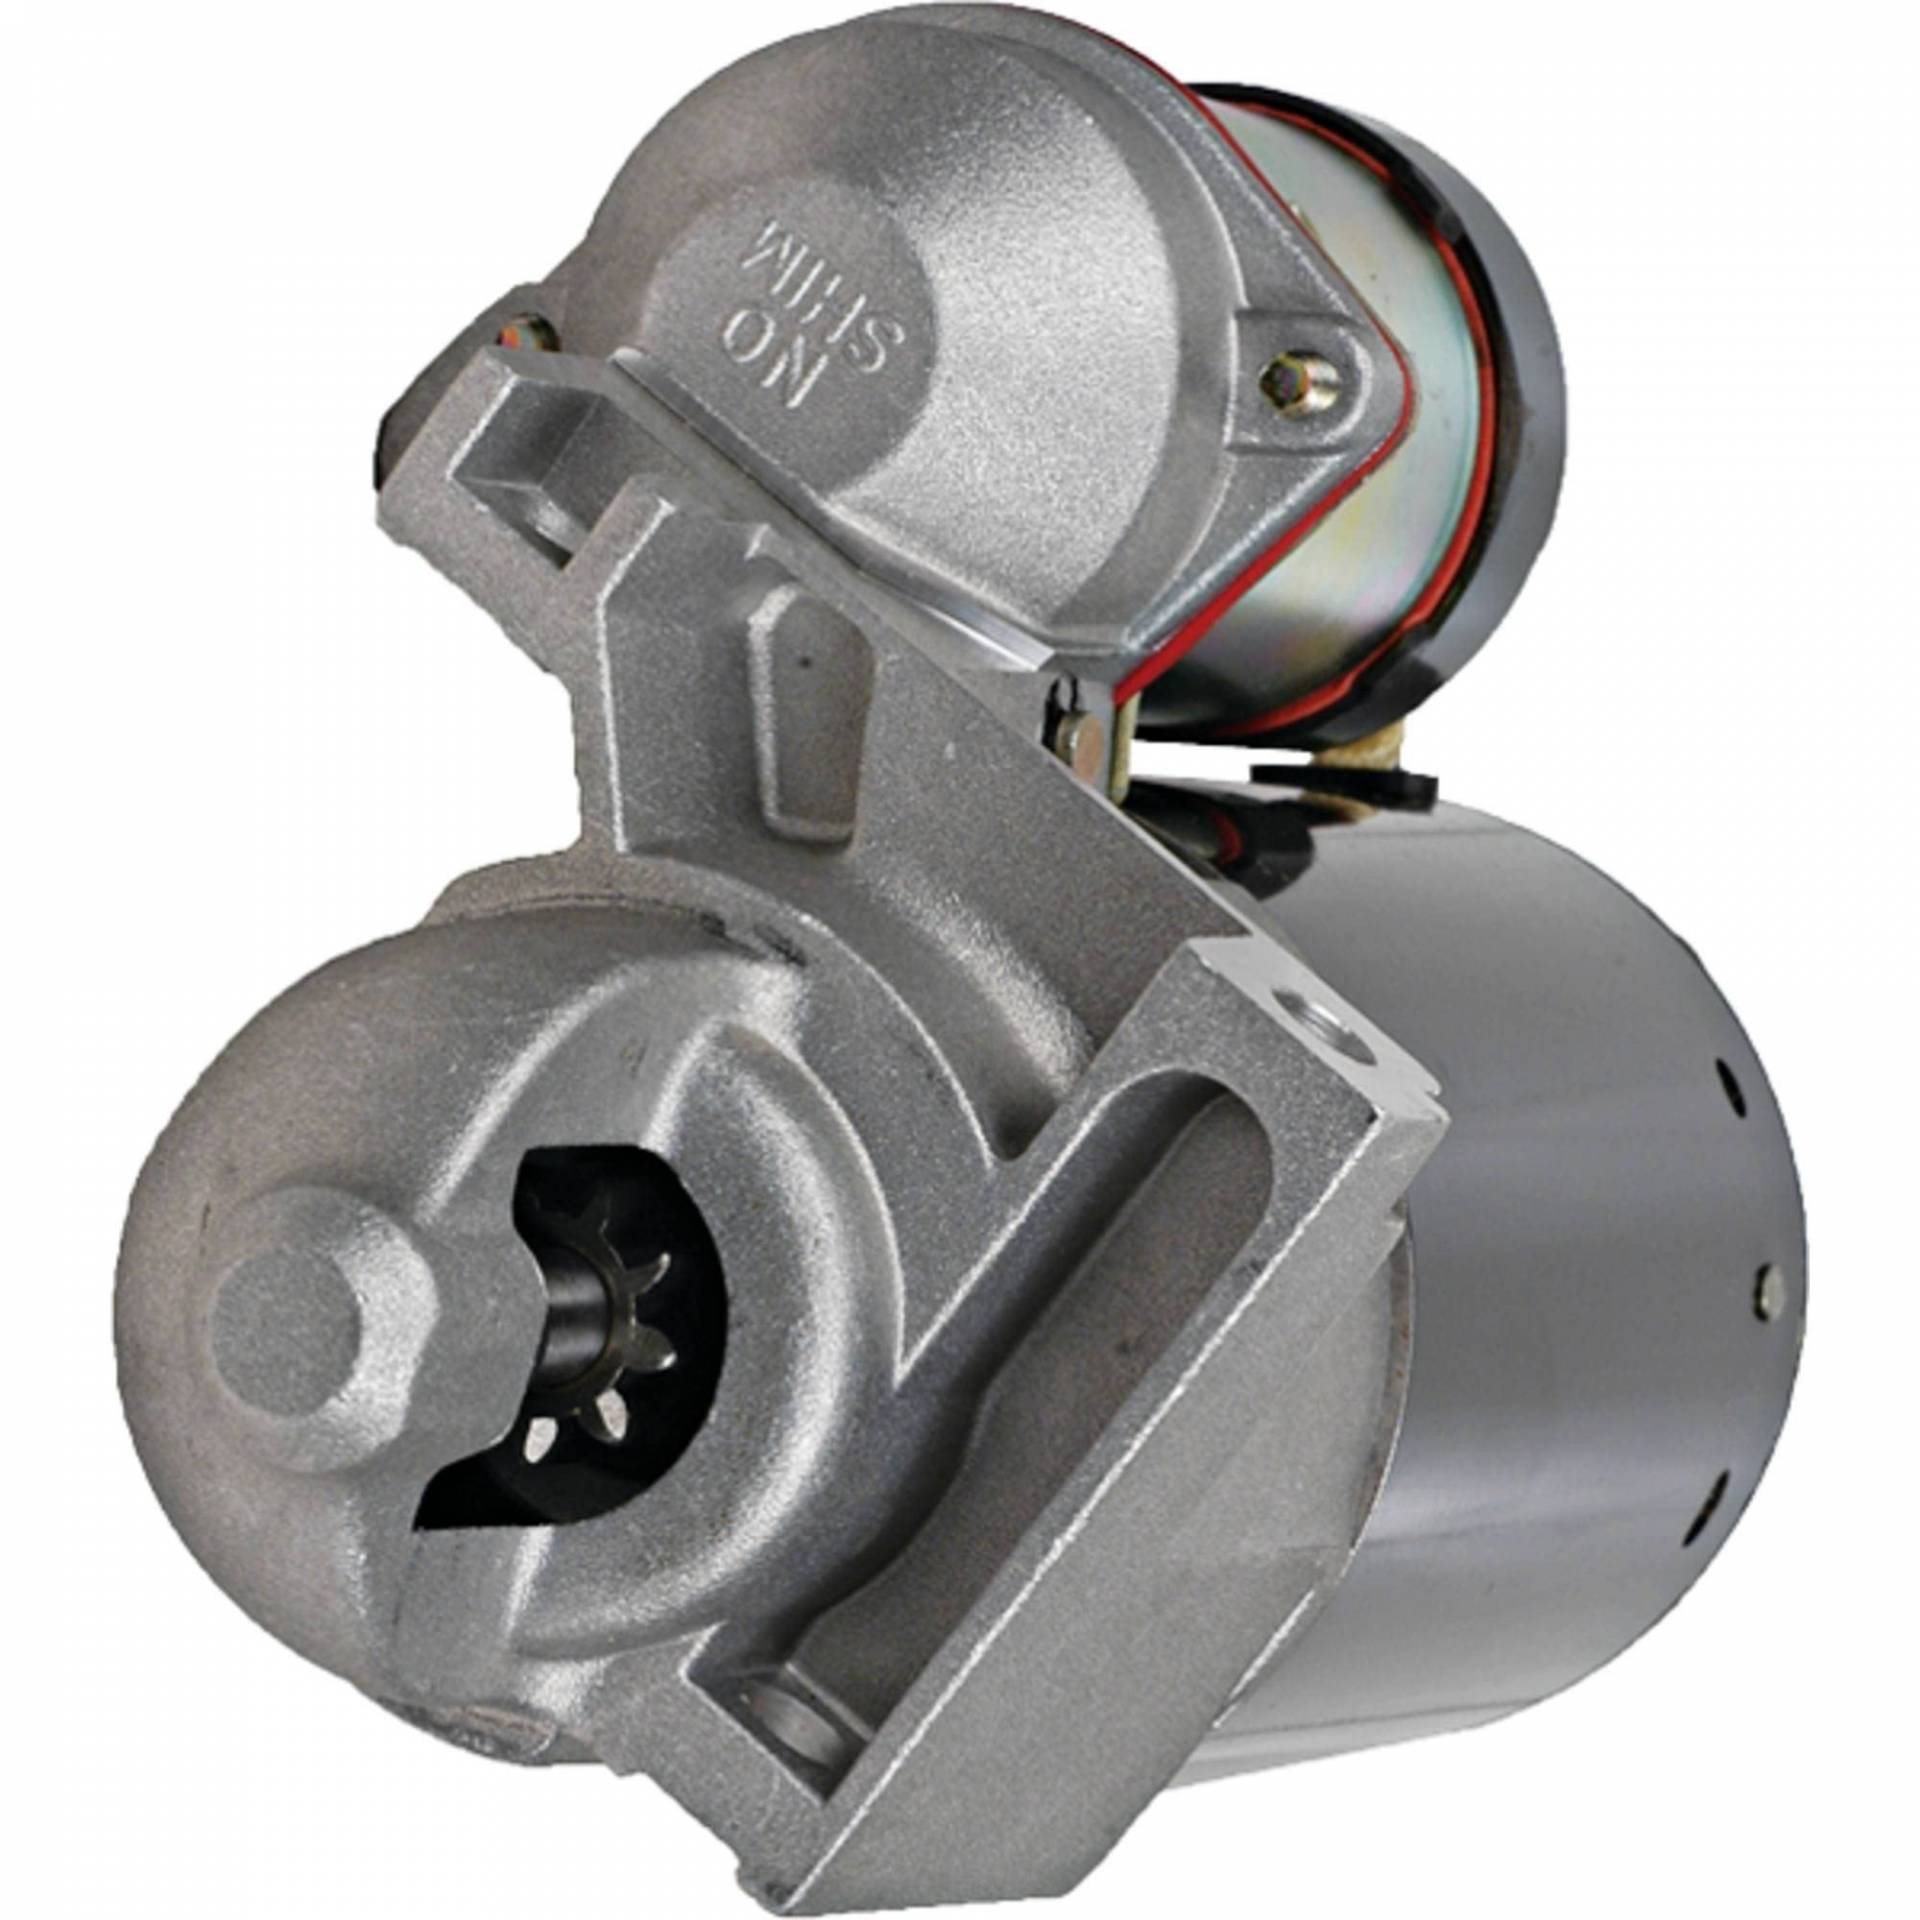 DB Electrical SDR0063 Starter für Buick LeSABre 3.8 3.8L Park Avenue Regal Oldsmobile 98 Delta 88 LSS Regency Sedan Bonneville 1996 1997 96 97 von DB Electrical